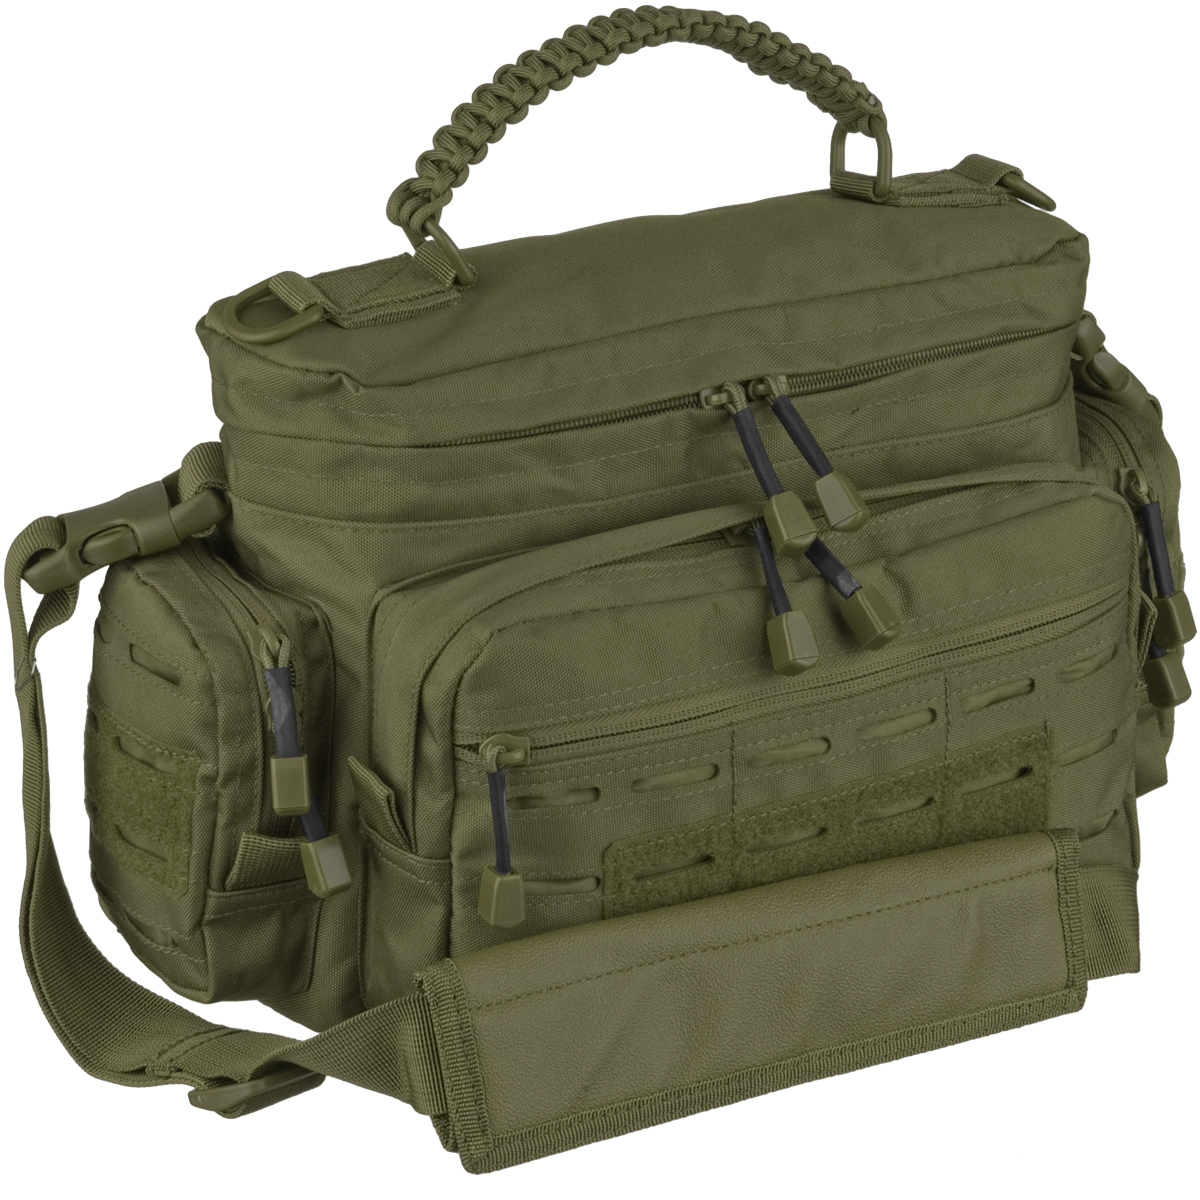 Mil tec tactical paracord bag small olive shoulder bags for How to make a paracord bag